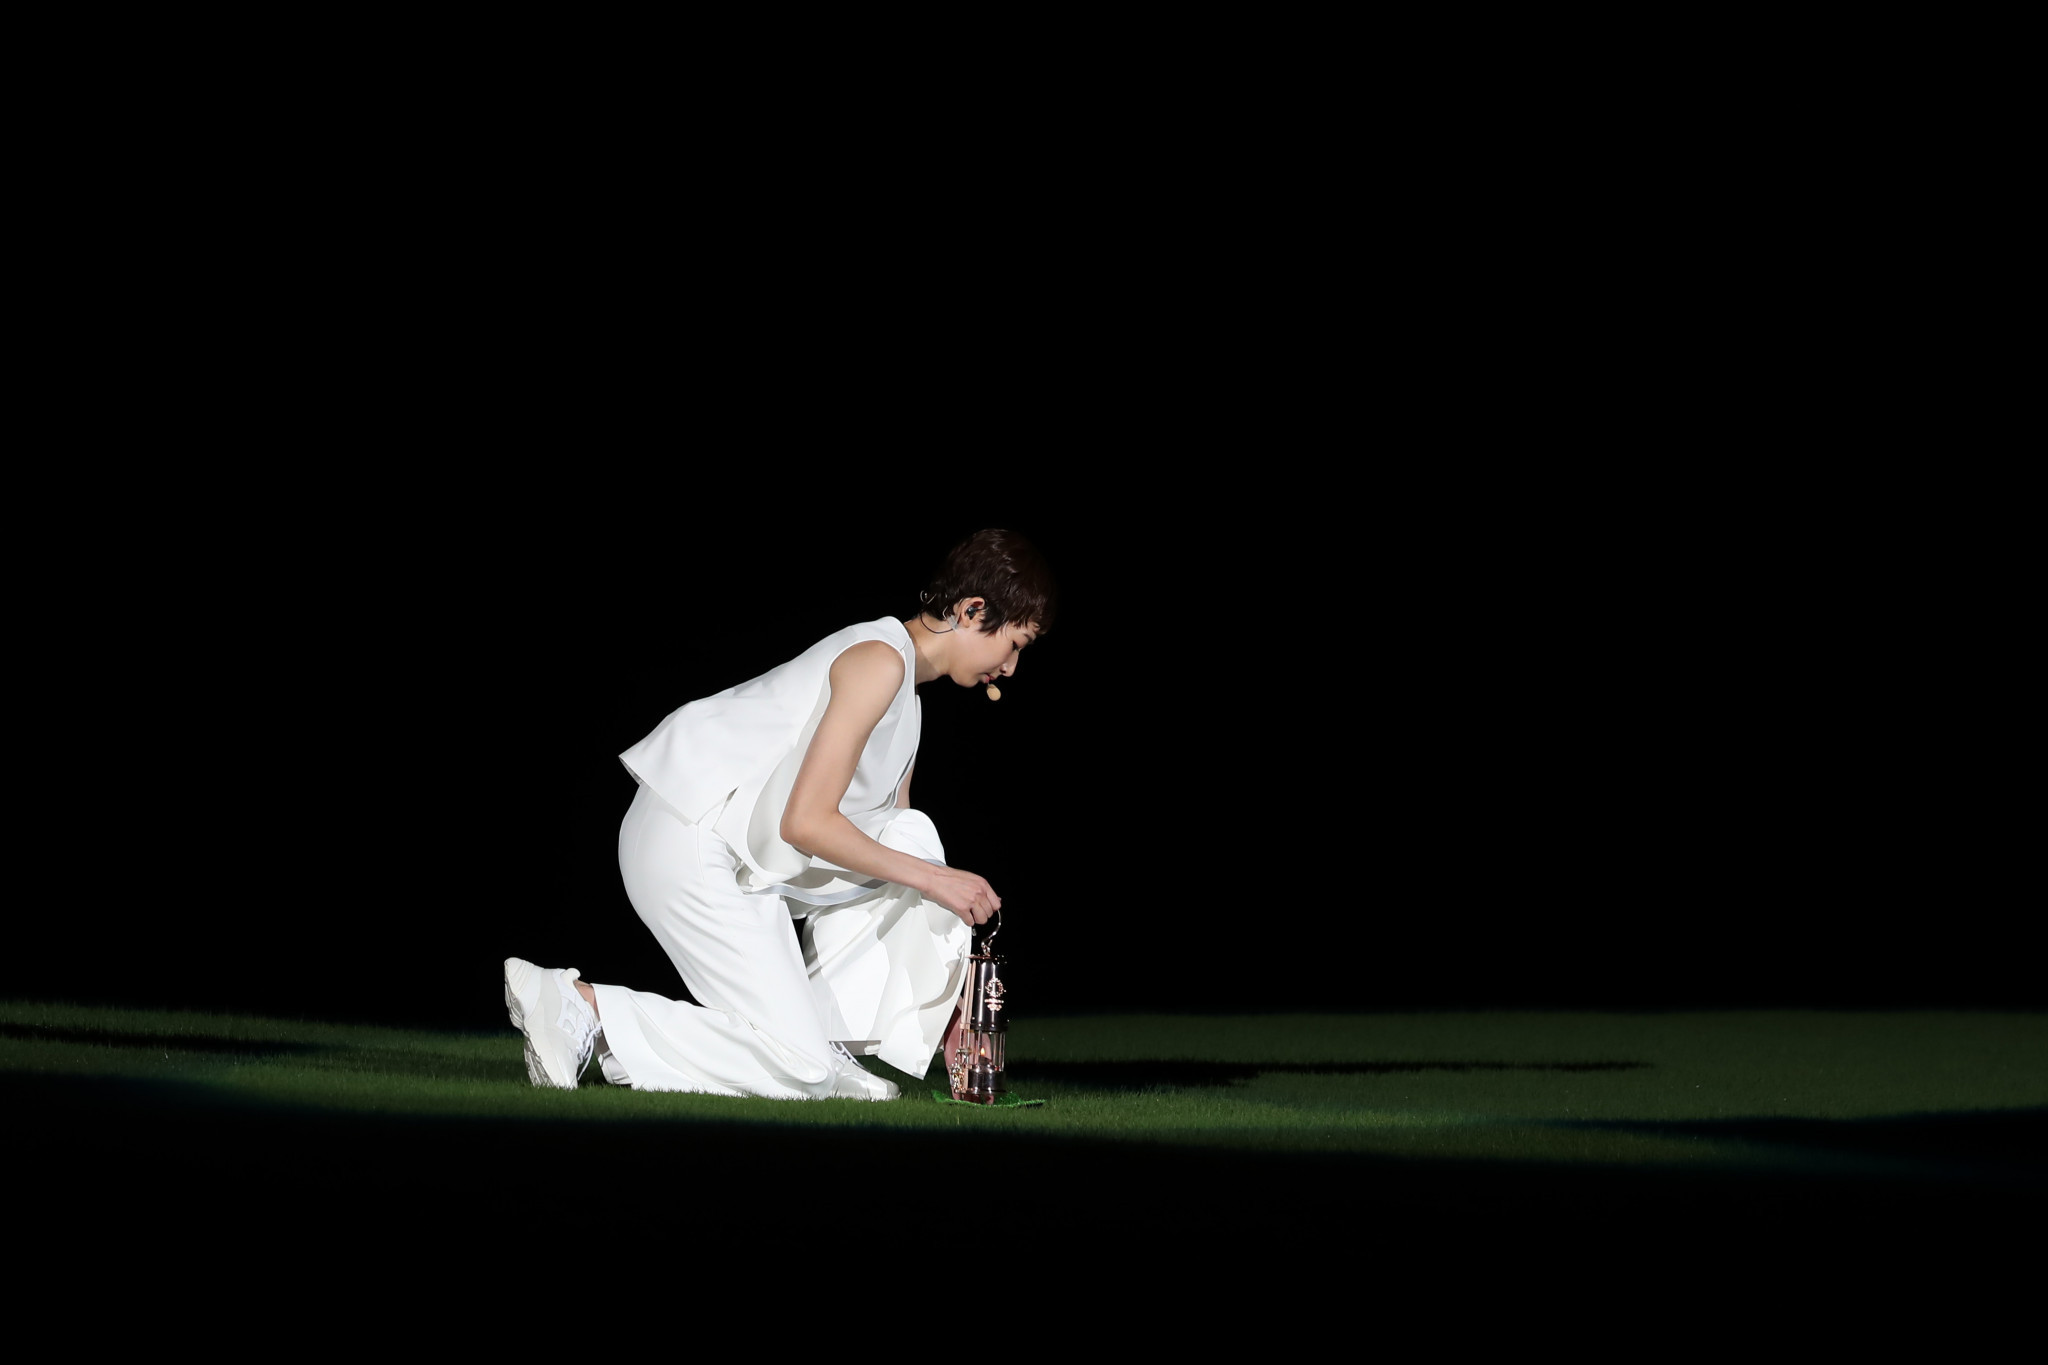 Rikako Ikee kneeling alone in the Tokyo Olympic Stadium ©Getty Images